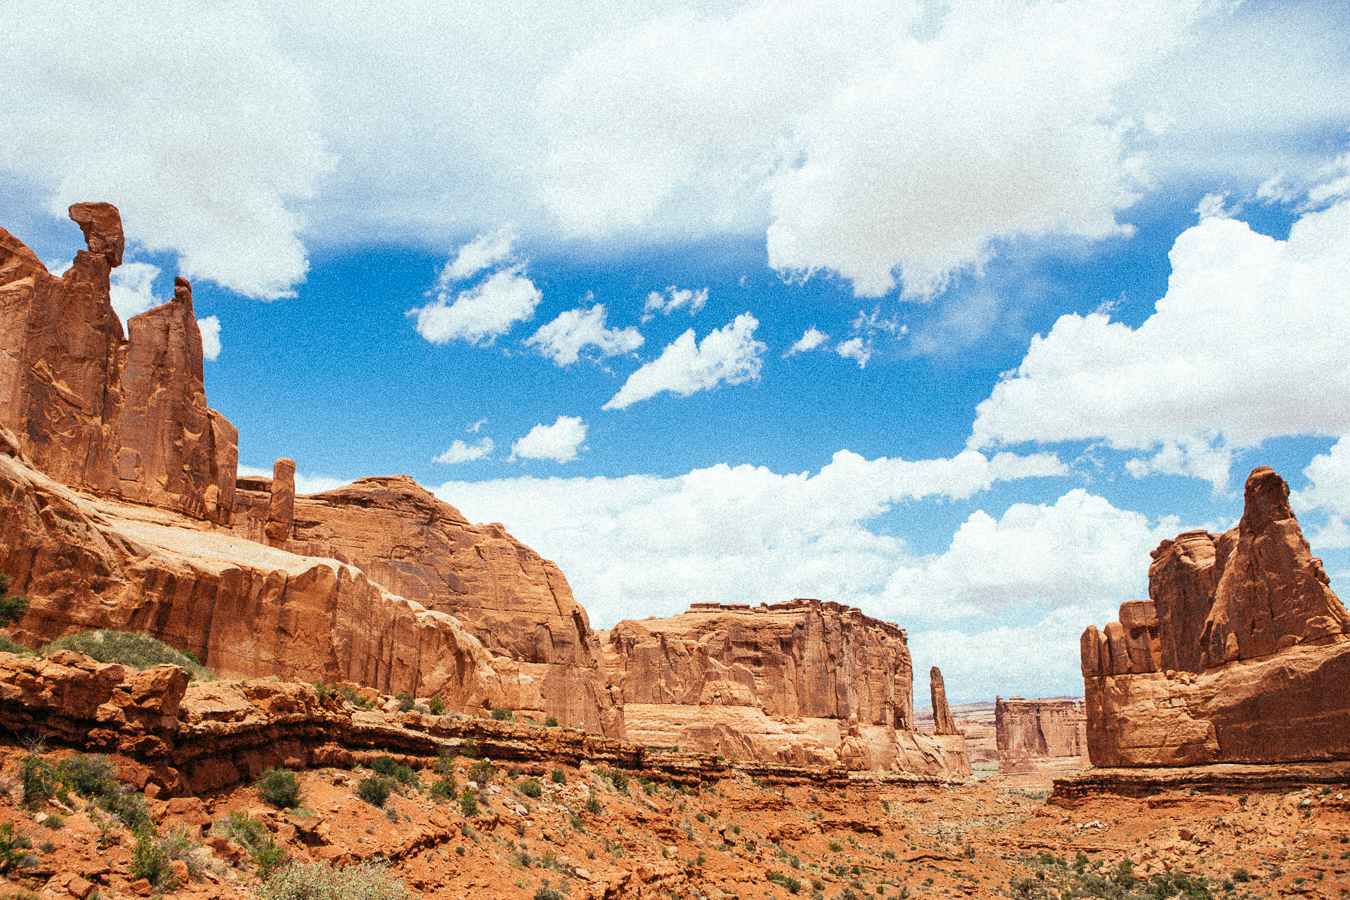 First destination was Arches National Park near Moab. I was shocked by the geographicbeauty of this land.I can't believe I never had comehere until now.